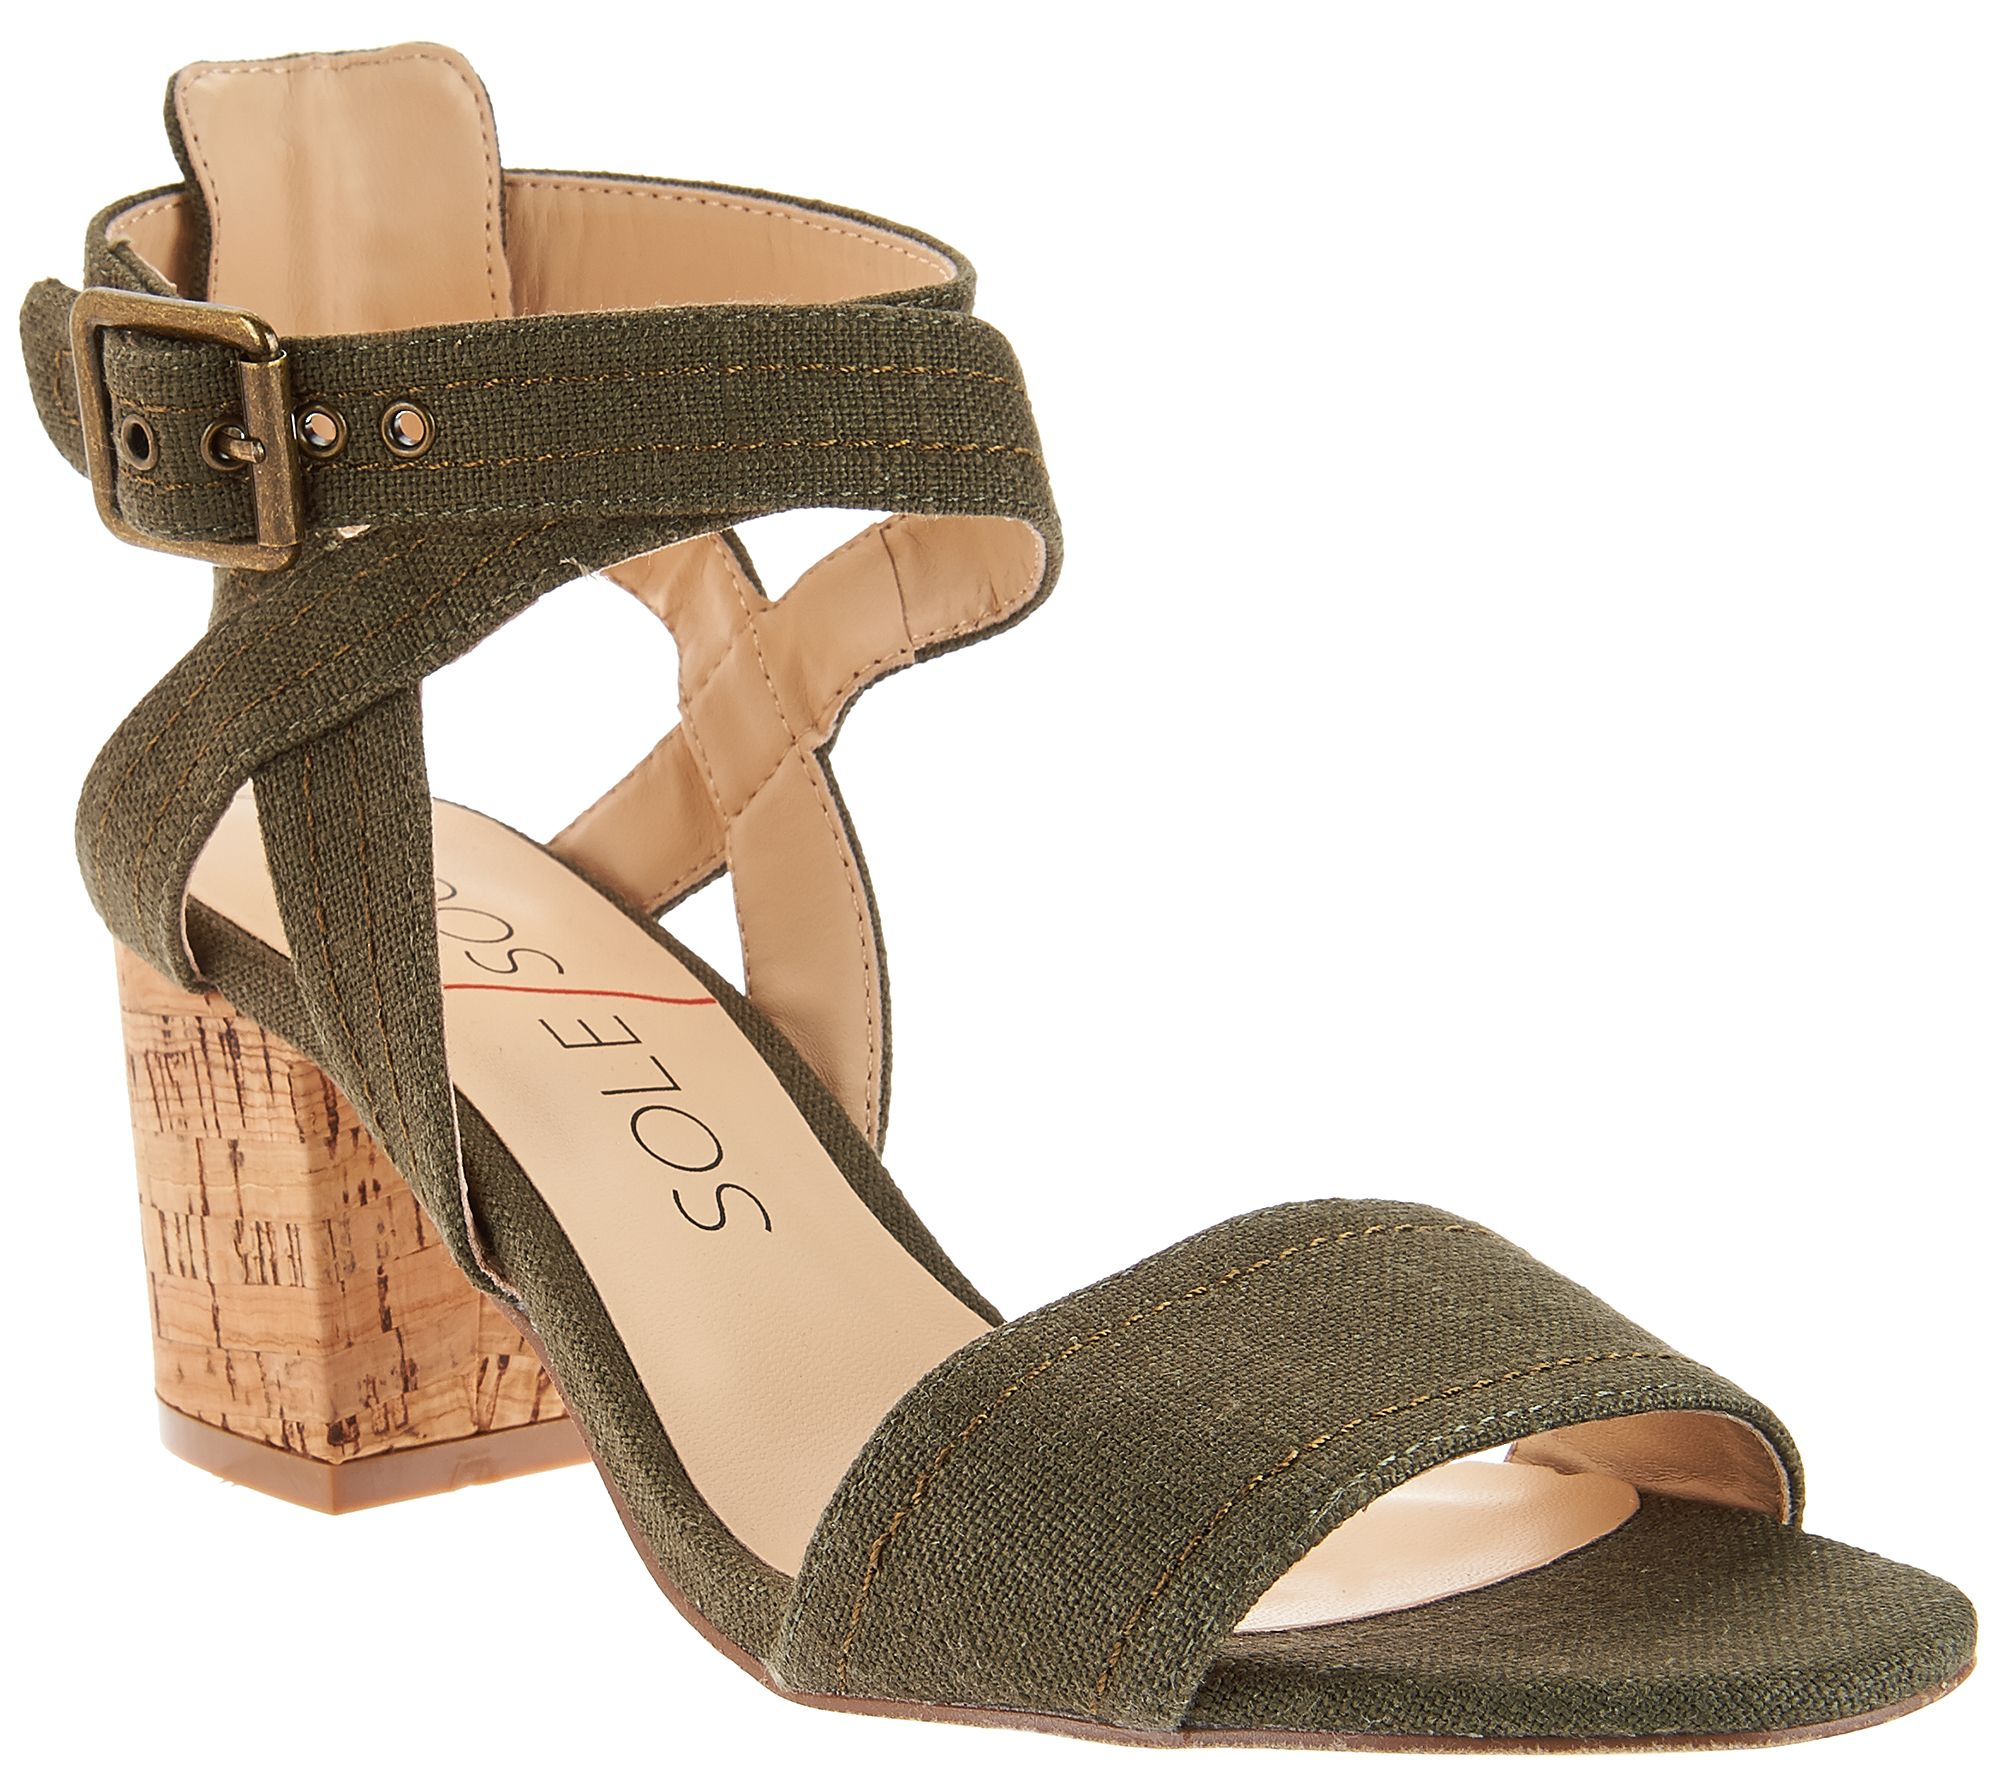 Qvc black sandals